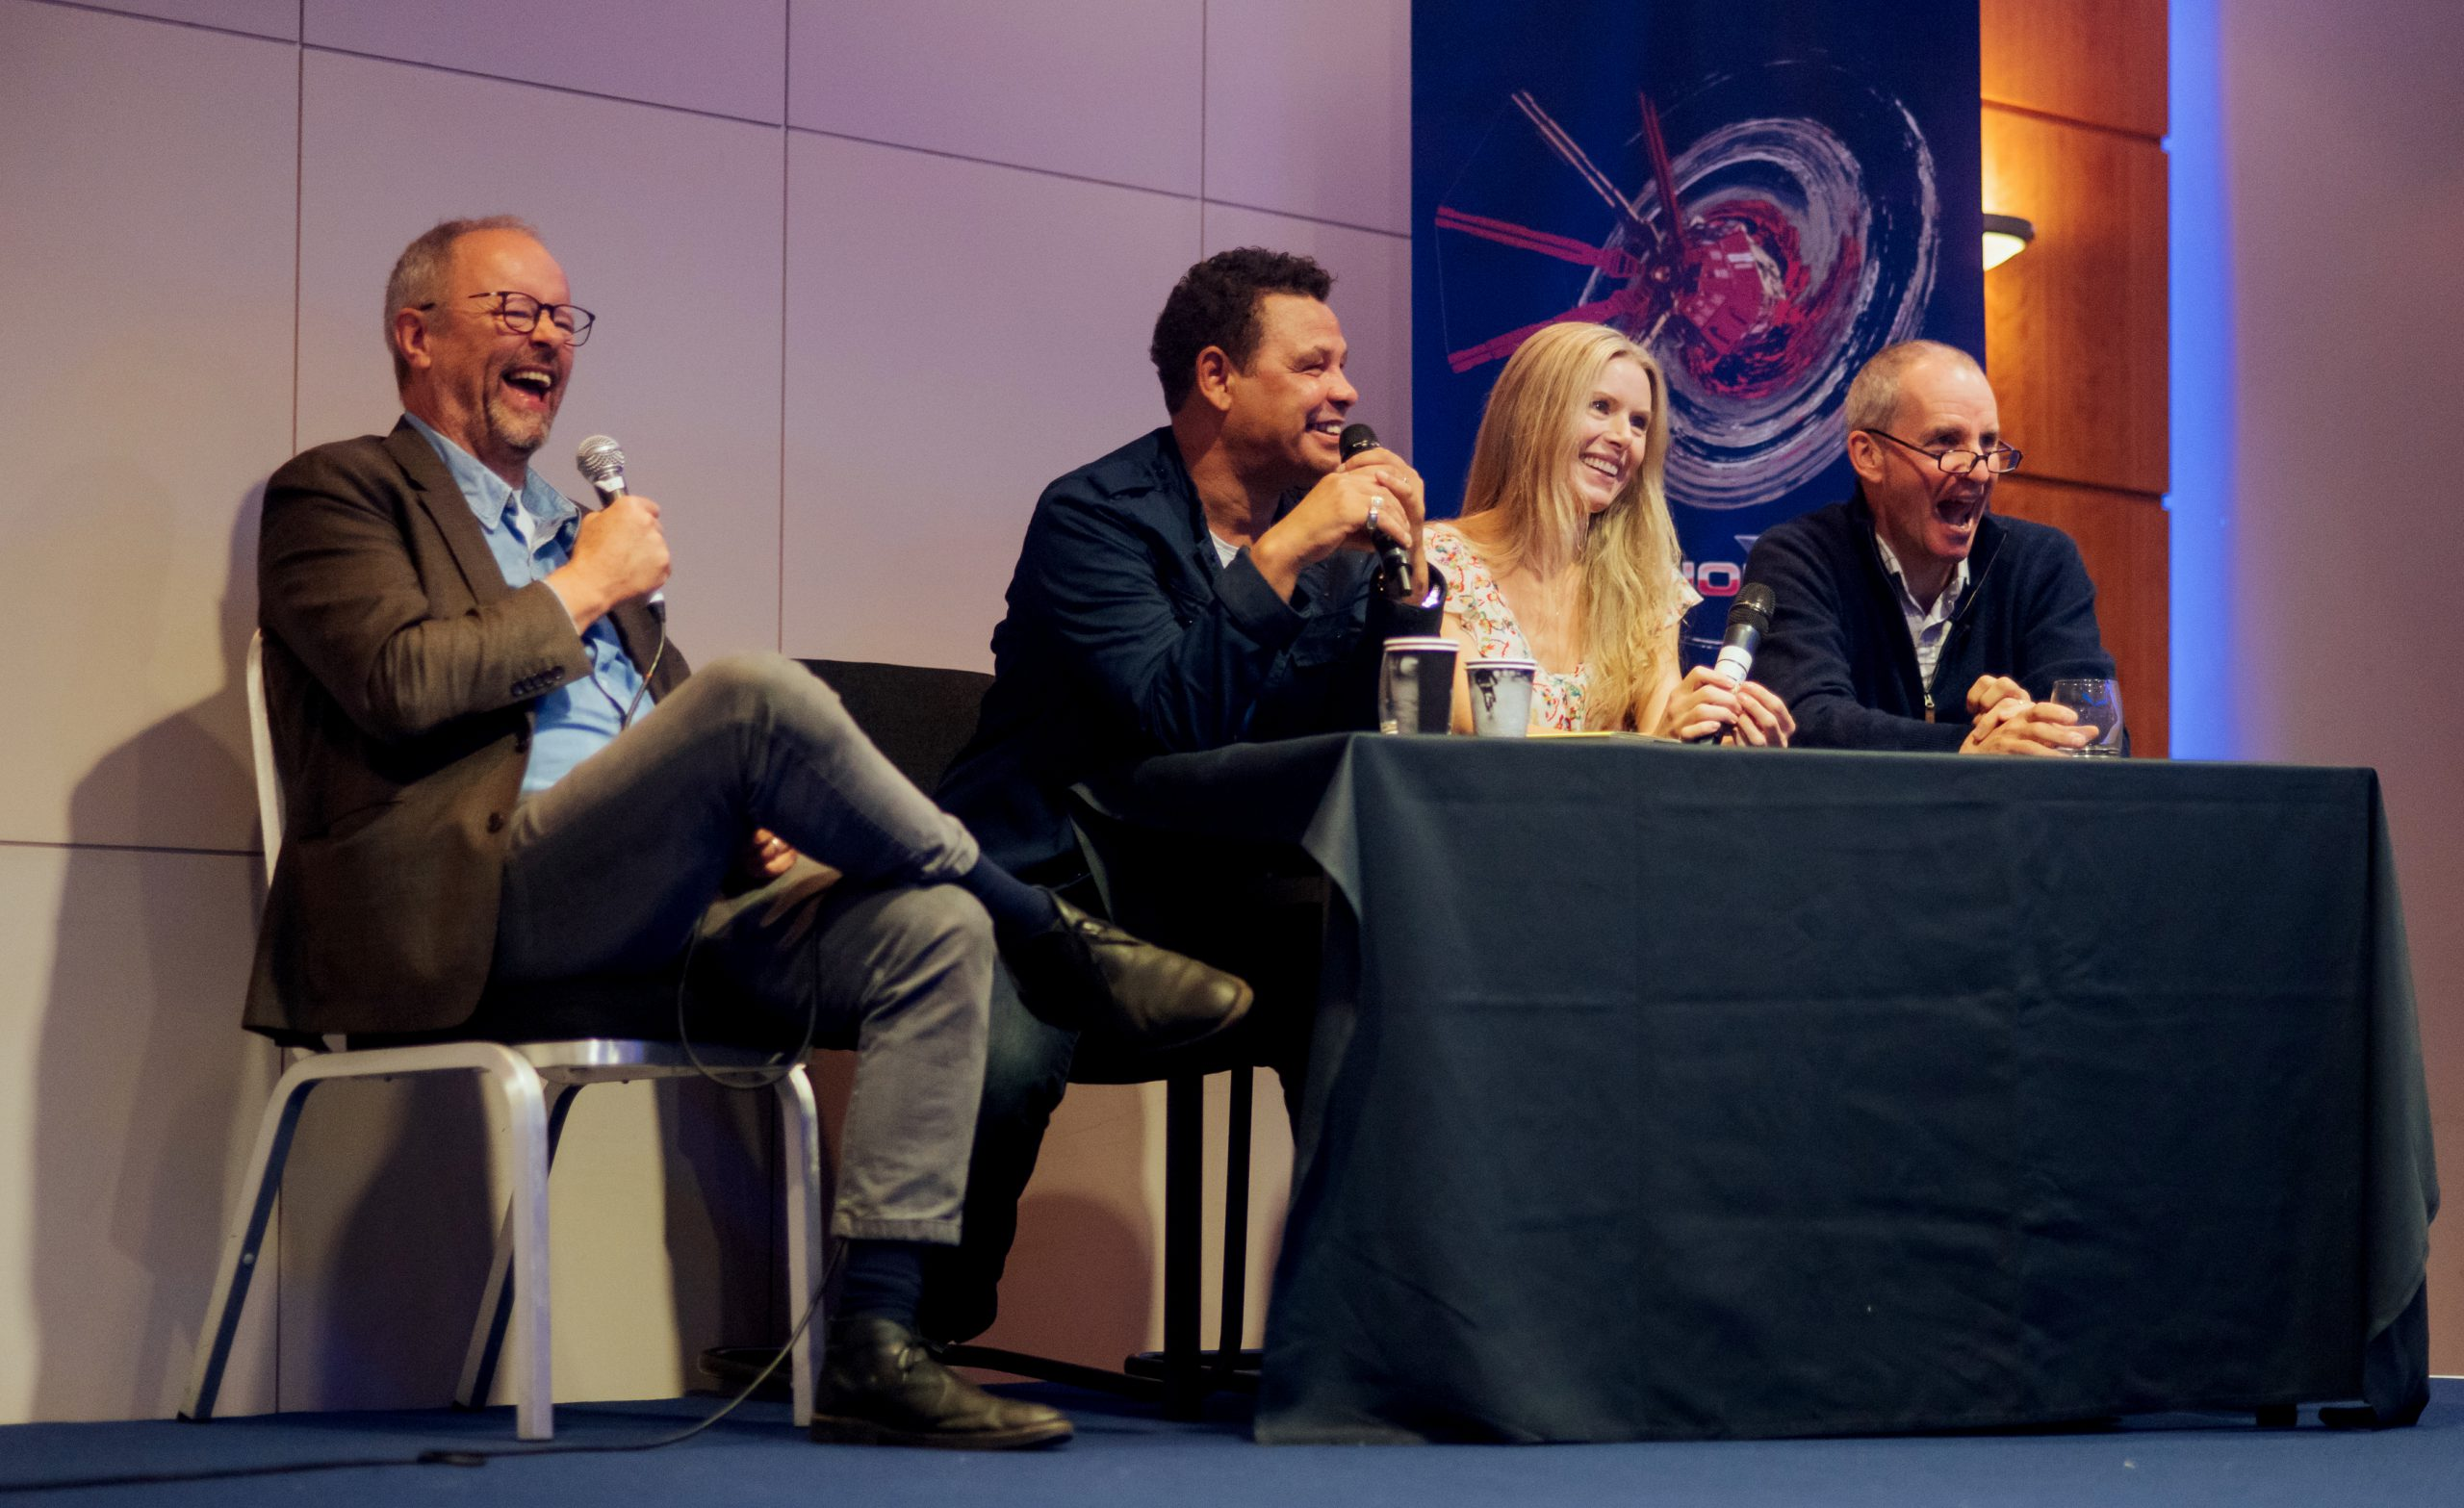 Robert Llewellyn, Craig Charles, Chloë Annett and Chris Barrie on stage for a Q&A at Dimension Jump XX